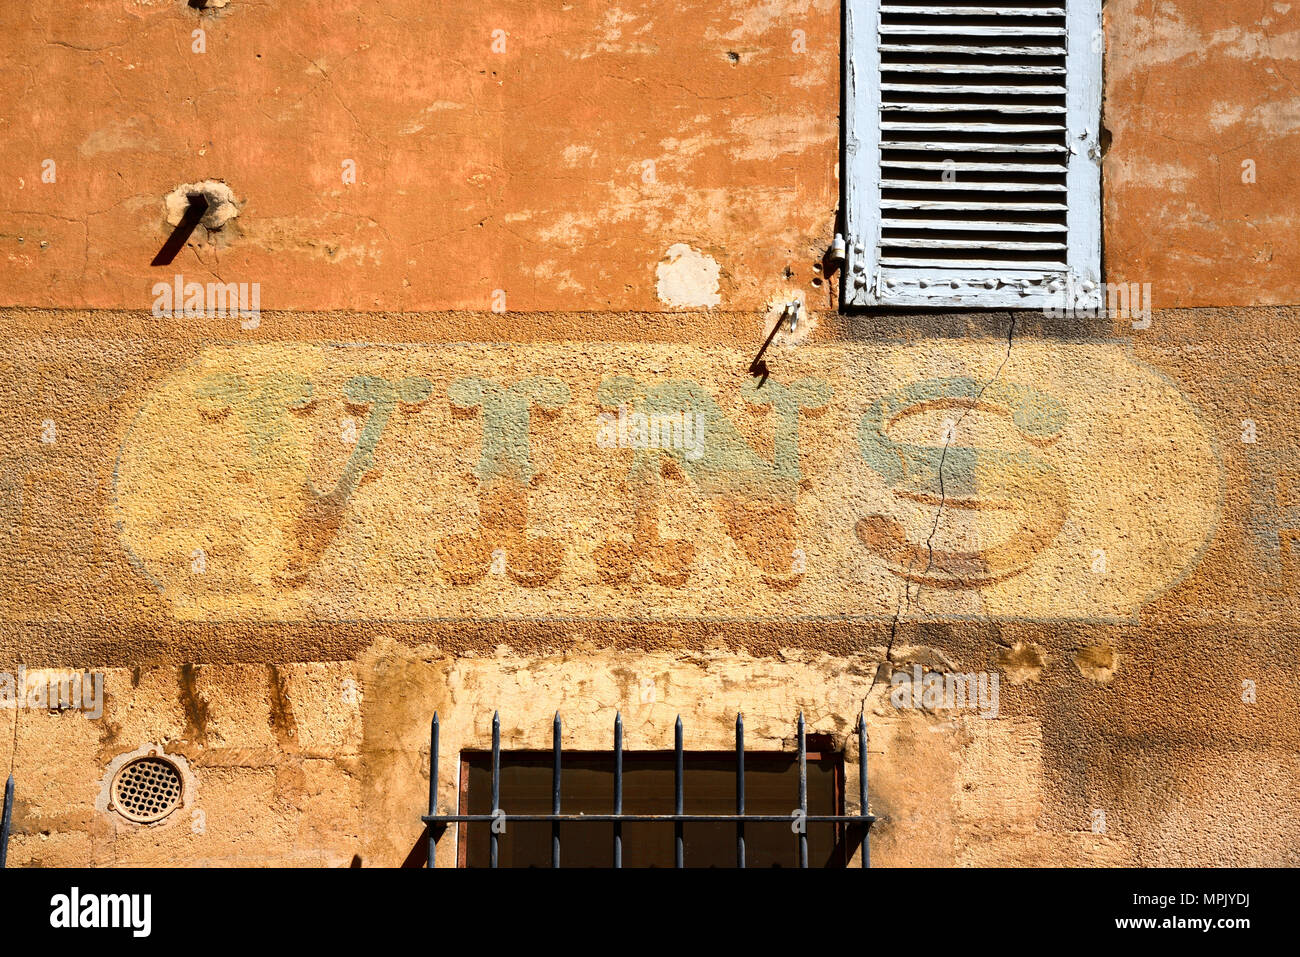 Old Wine Advert, Shop Sign or Faded Wall Painting of Former Corner Shop in the Old Town Aix-en-Provence Provence France - Stock Image